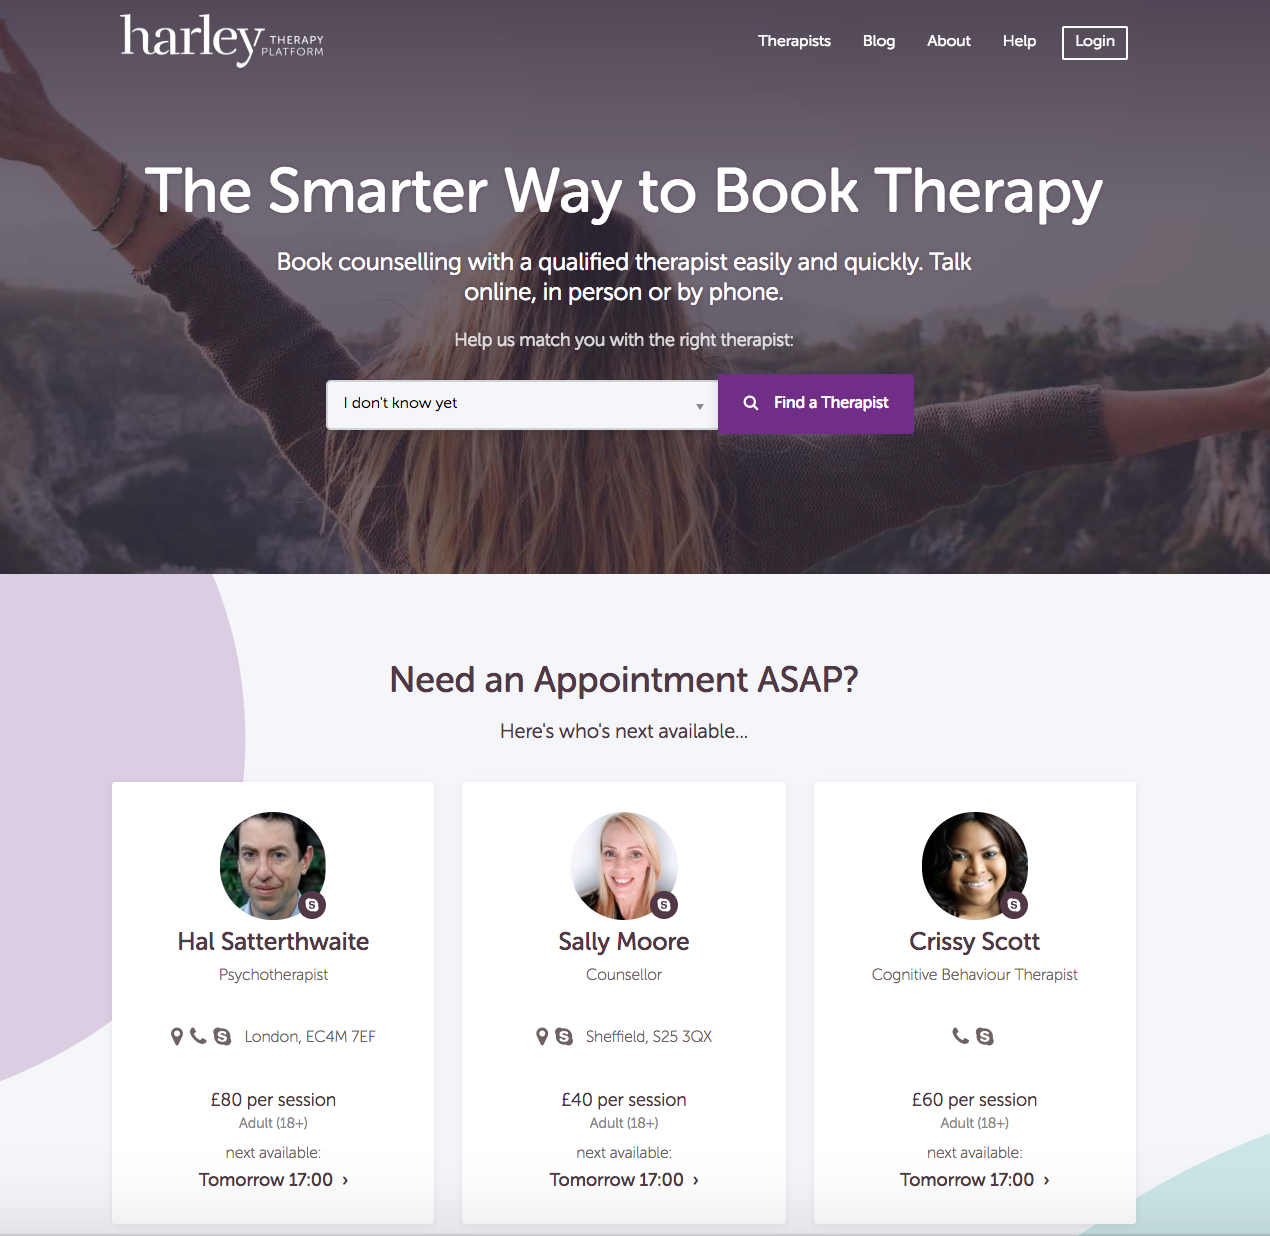 HarleyTherapy.com - Everyone needs a therapist image